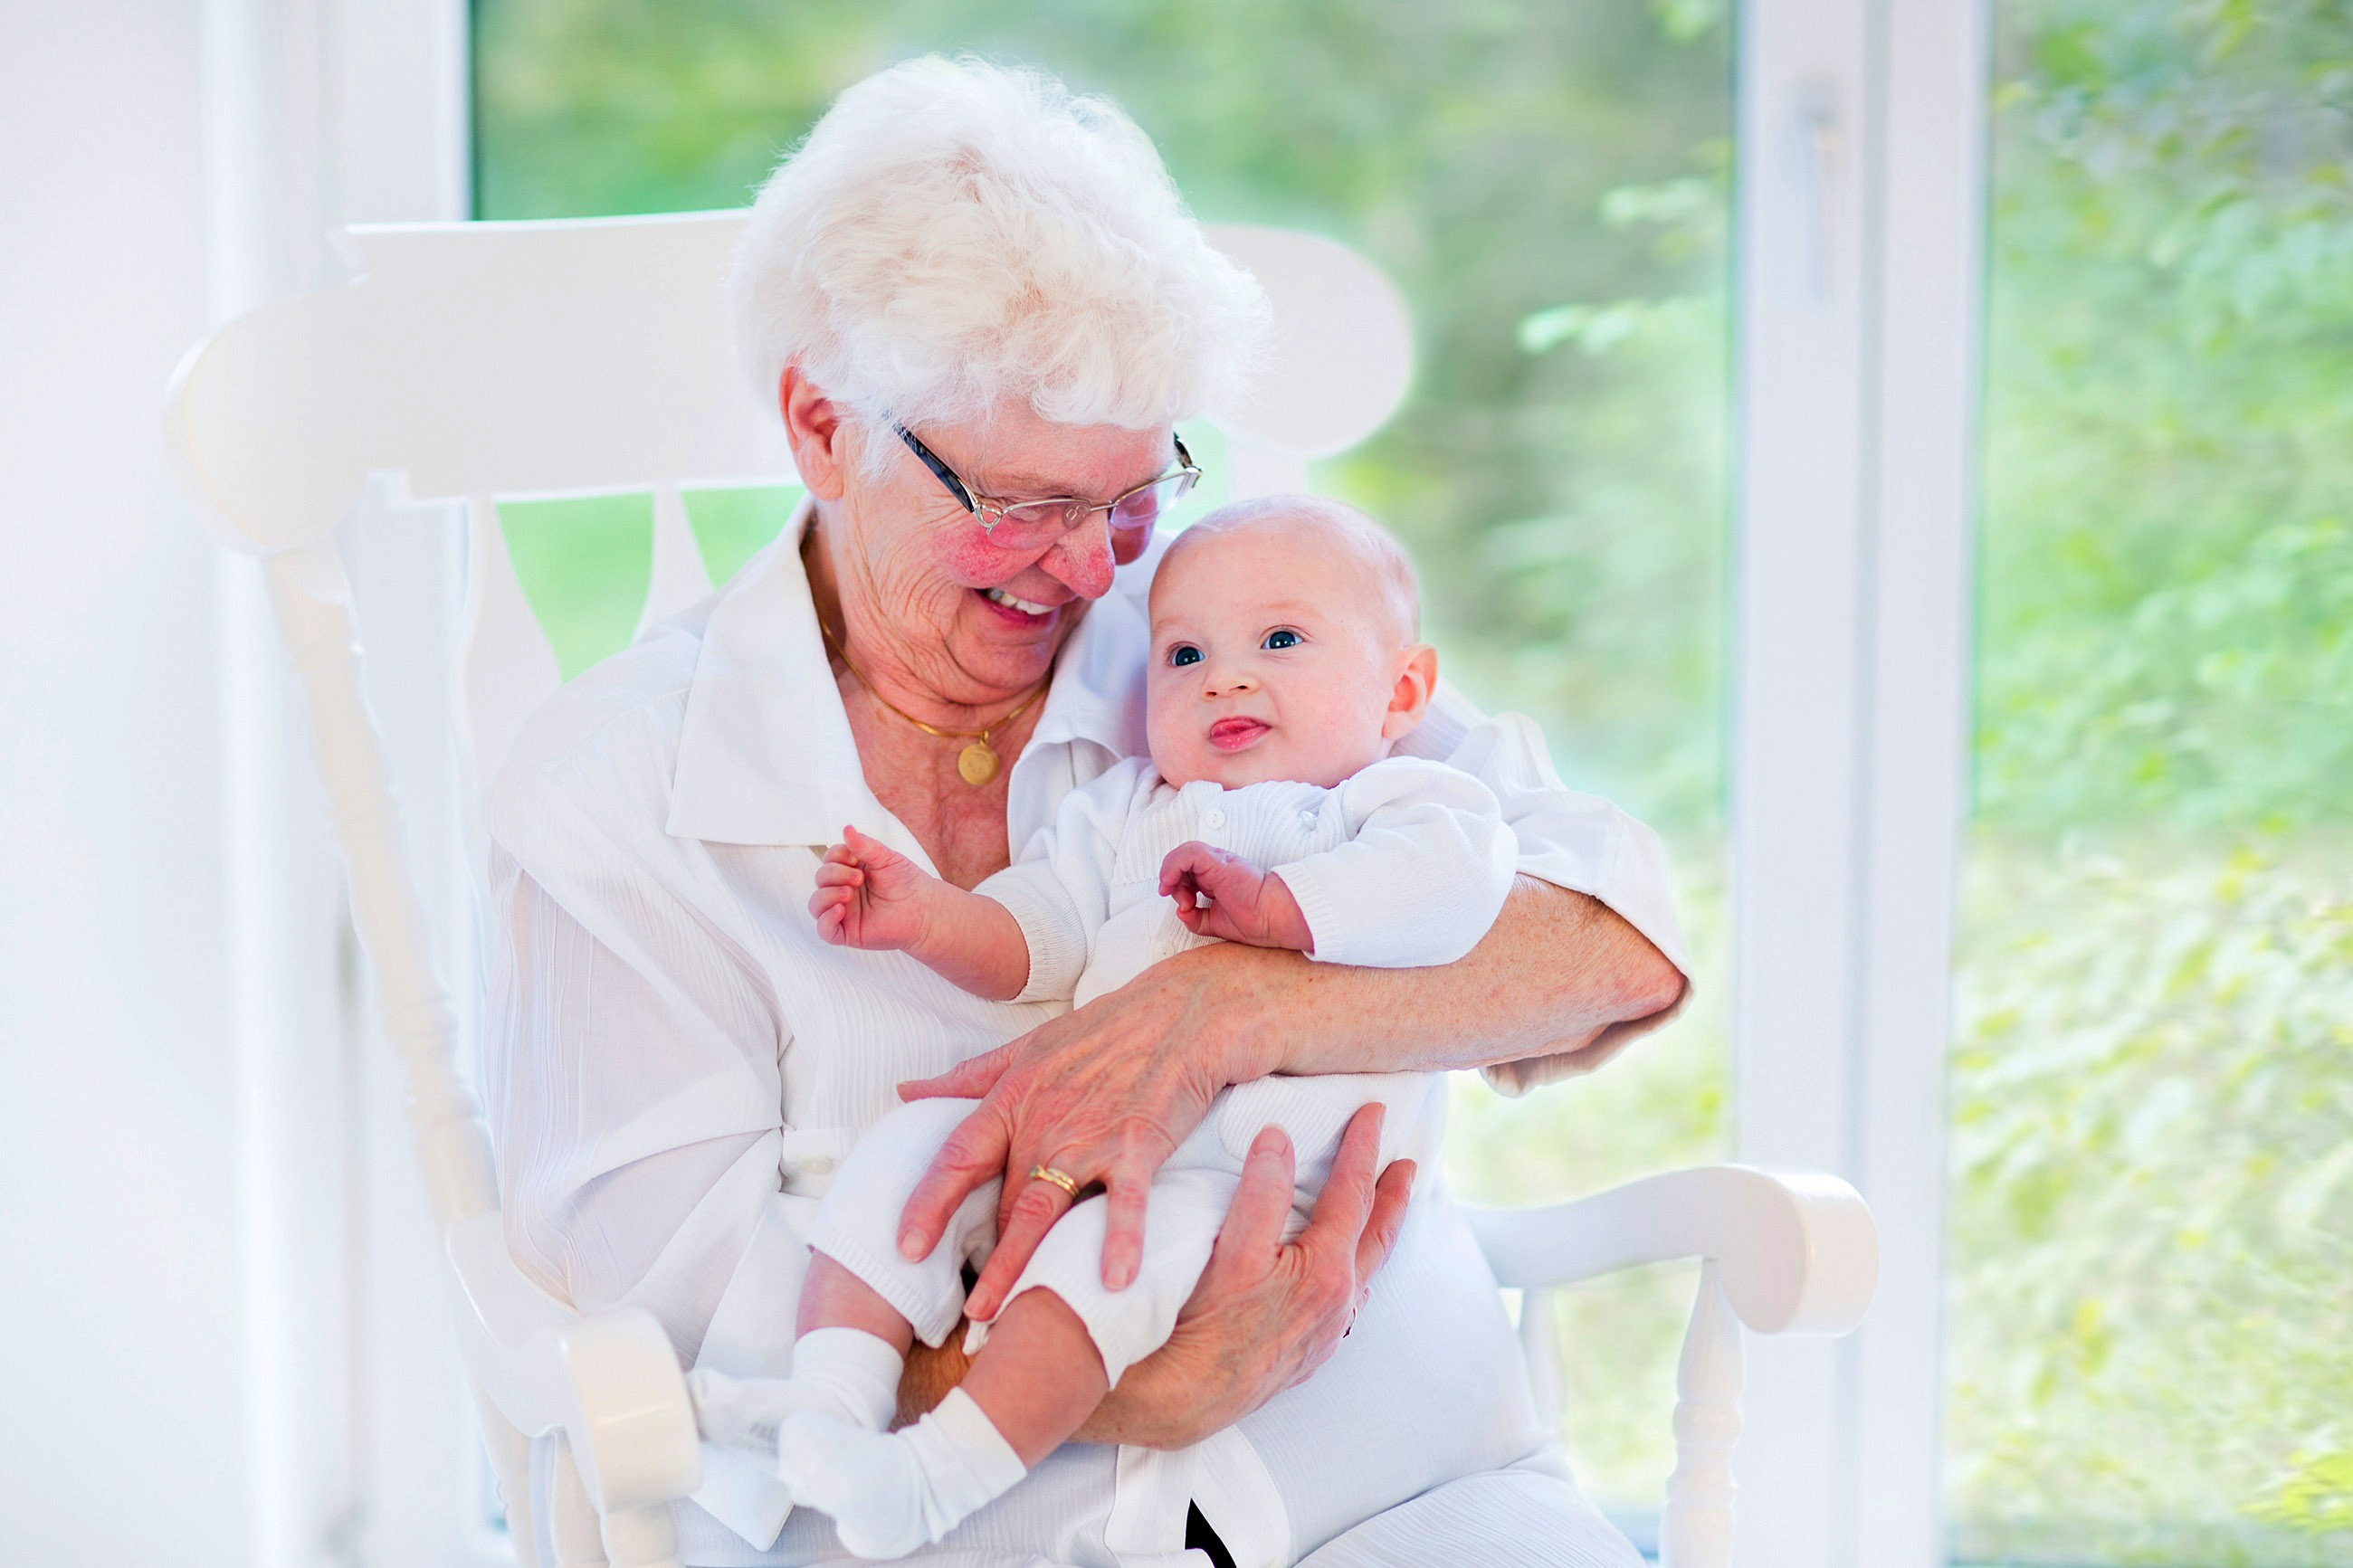 You are Never Too Young to Too Old for Specific Upper Cervical Care